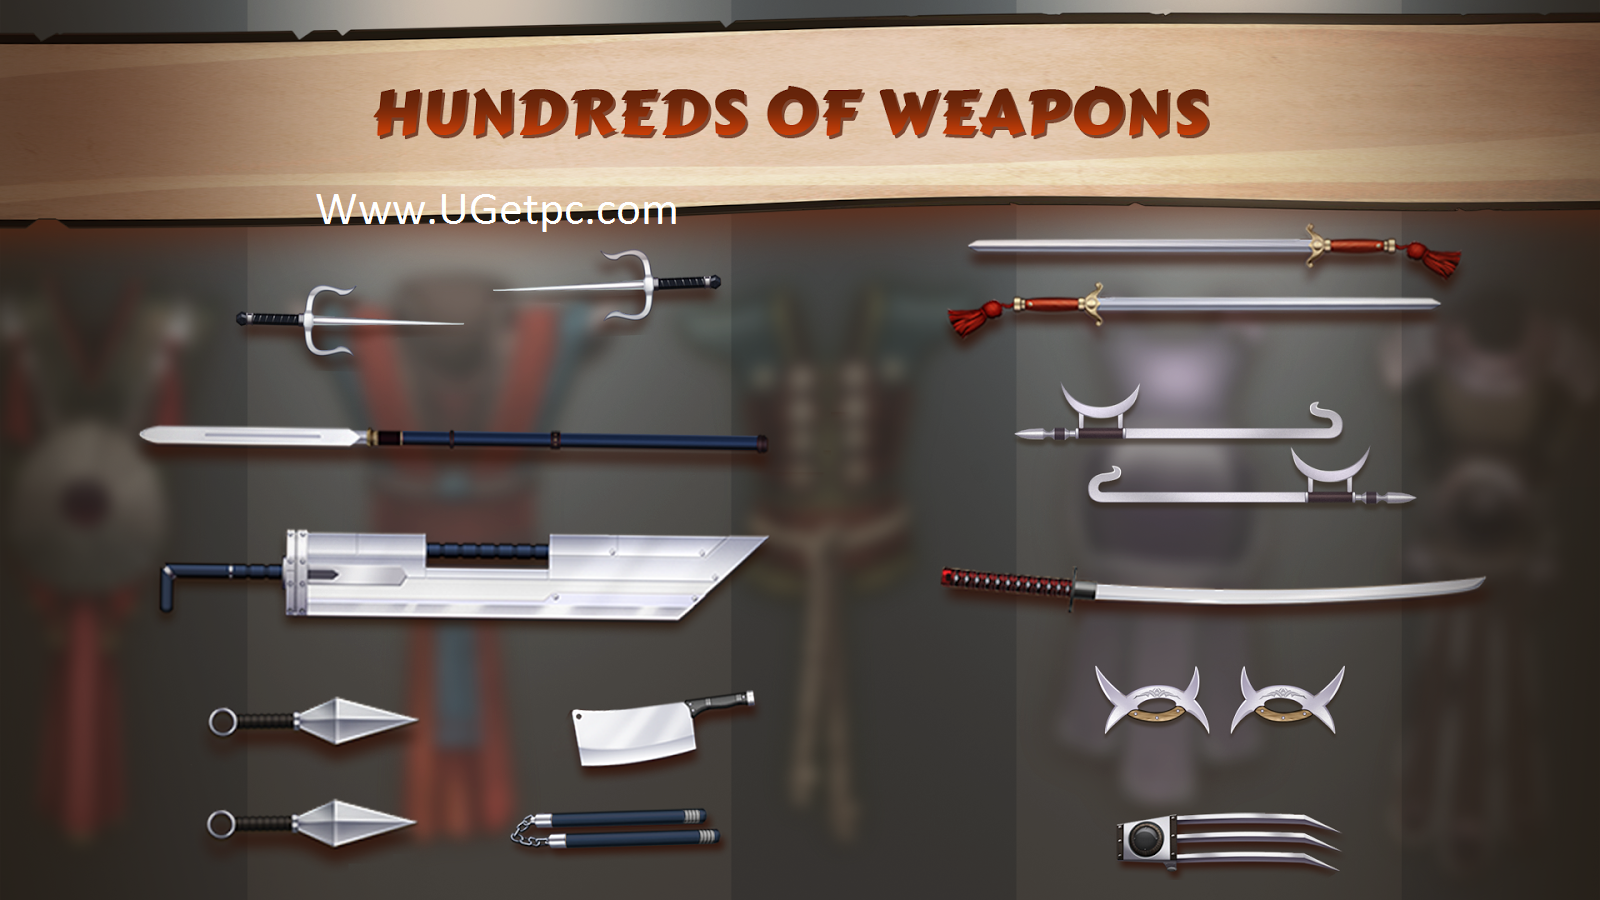 Shadow-Fight-2-Apk-weapon-Ugetpc